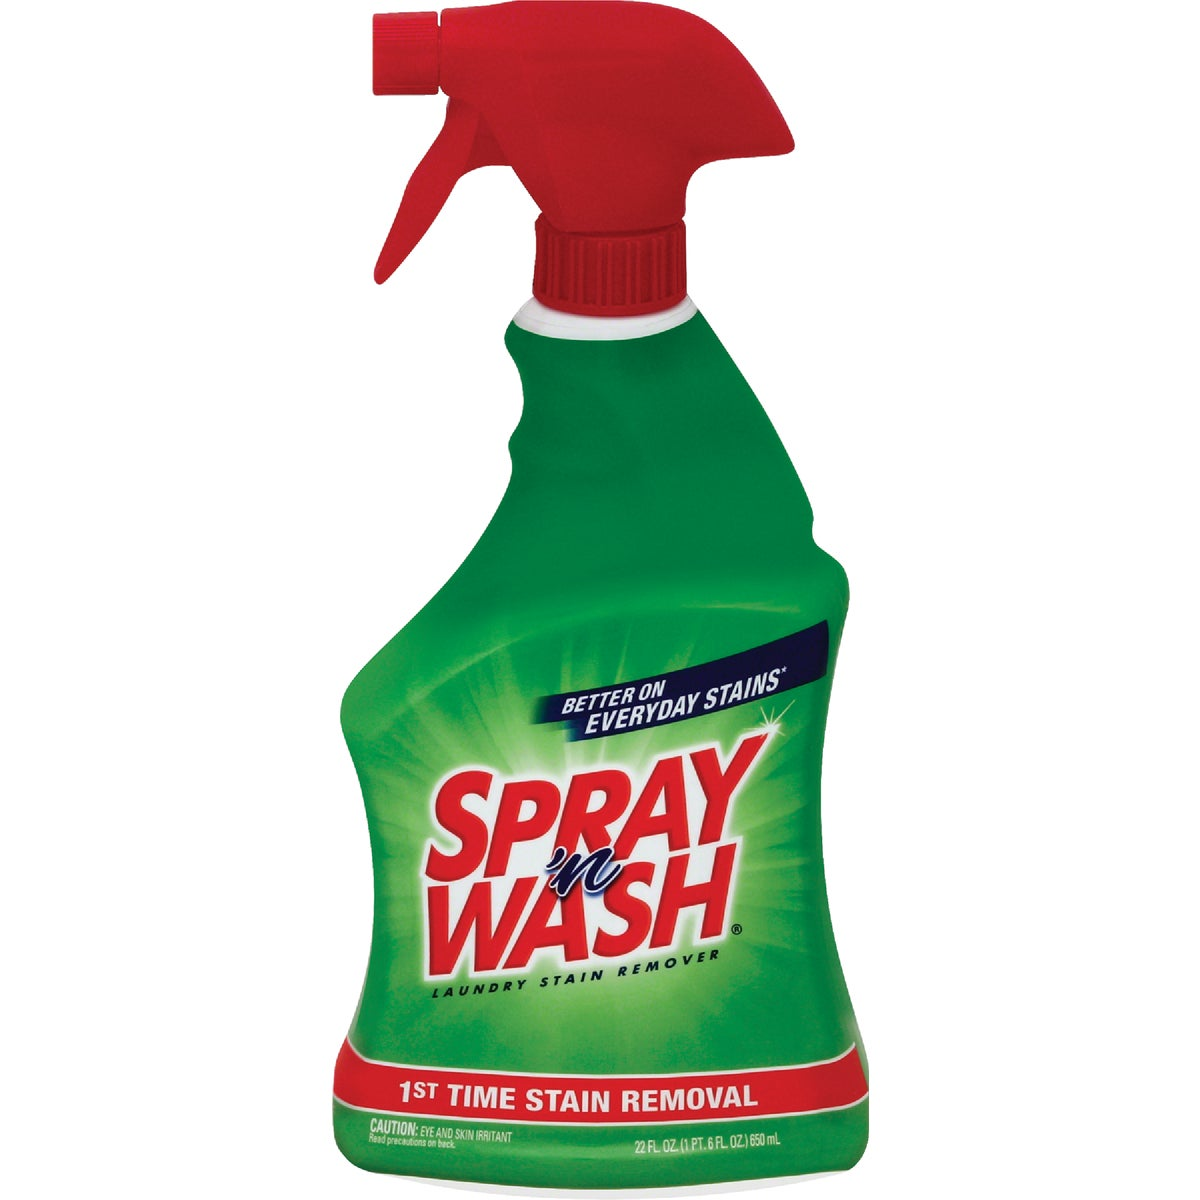 22OZ SPRAY N WASH - 6233800230 by Reckitt Benckiser